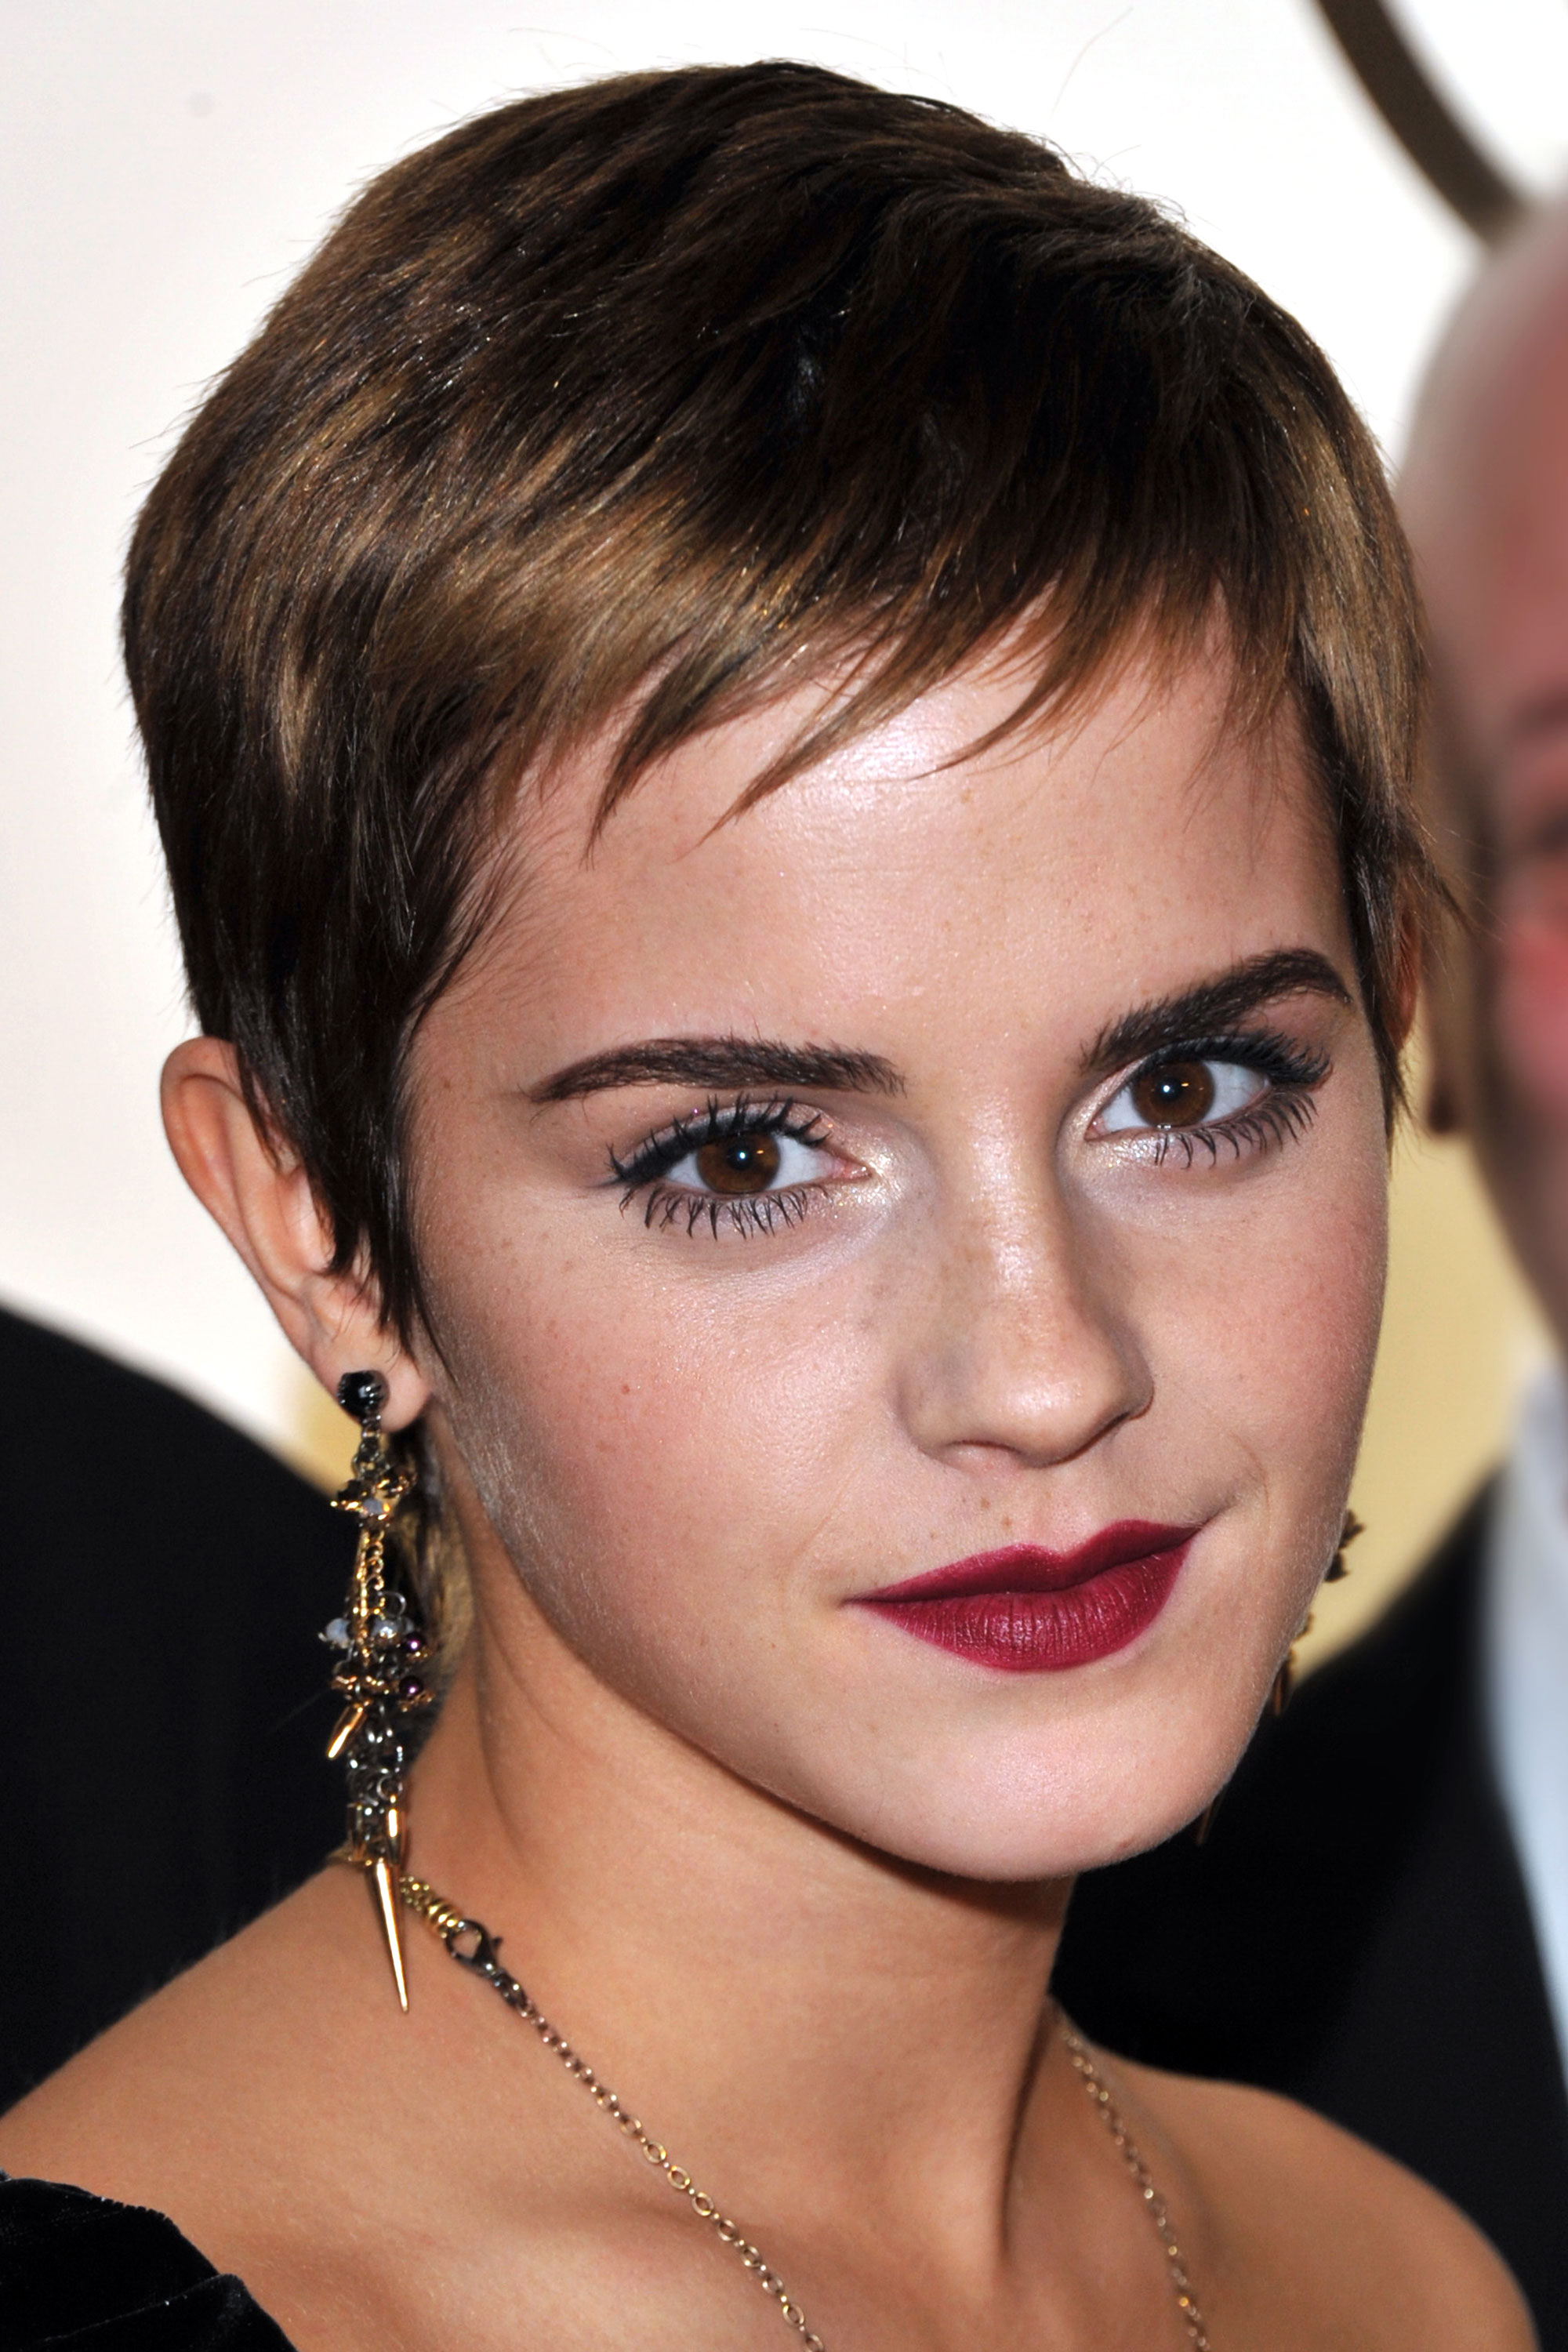 Photos long pixie haircut with short bangs for mobile high quality facts to know before doing cut women hairstyles